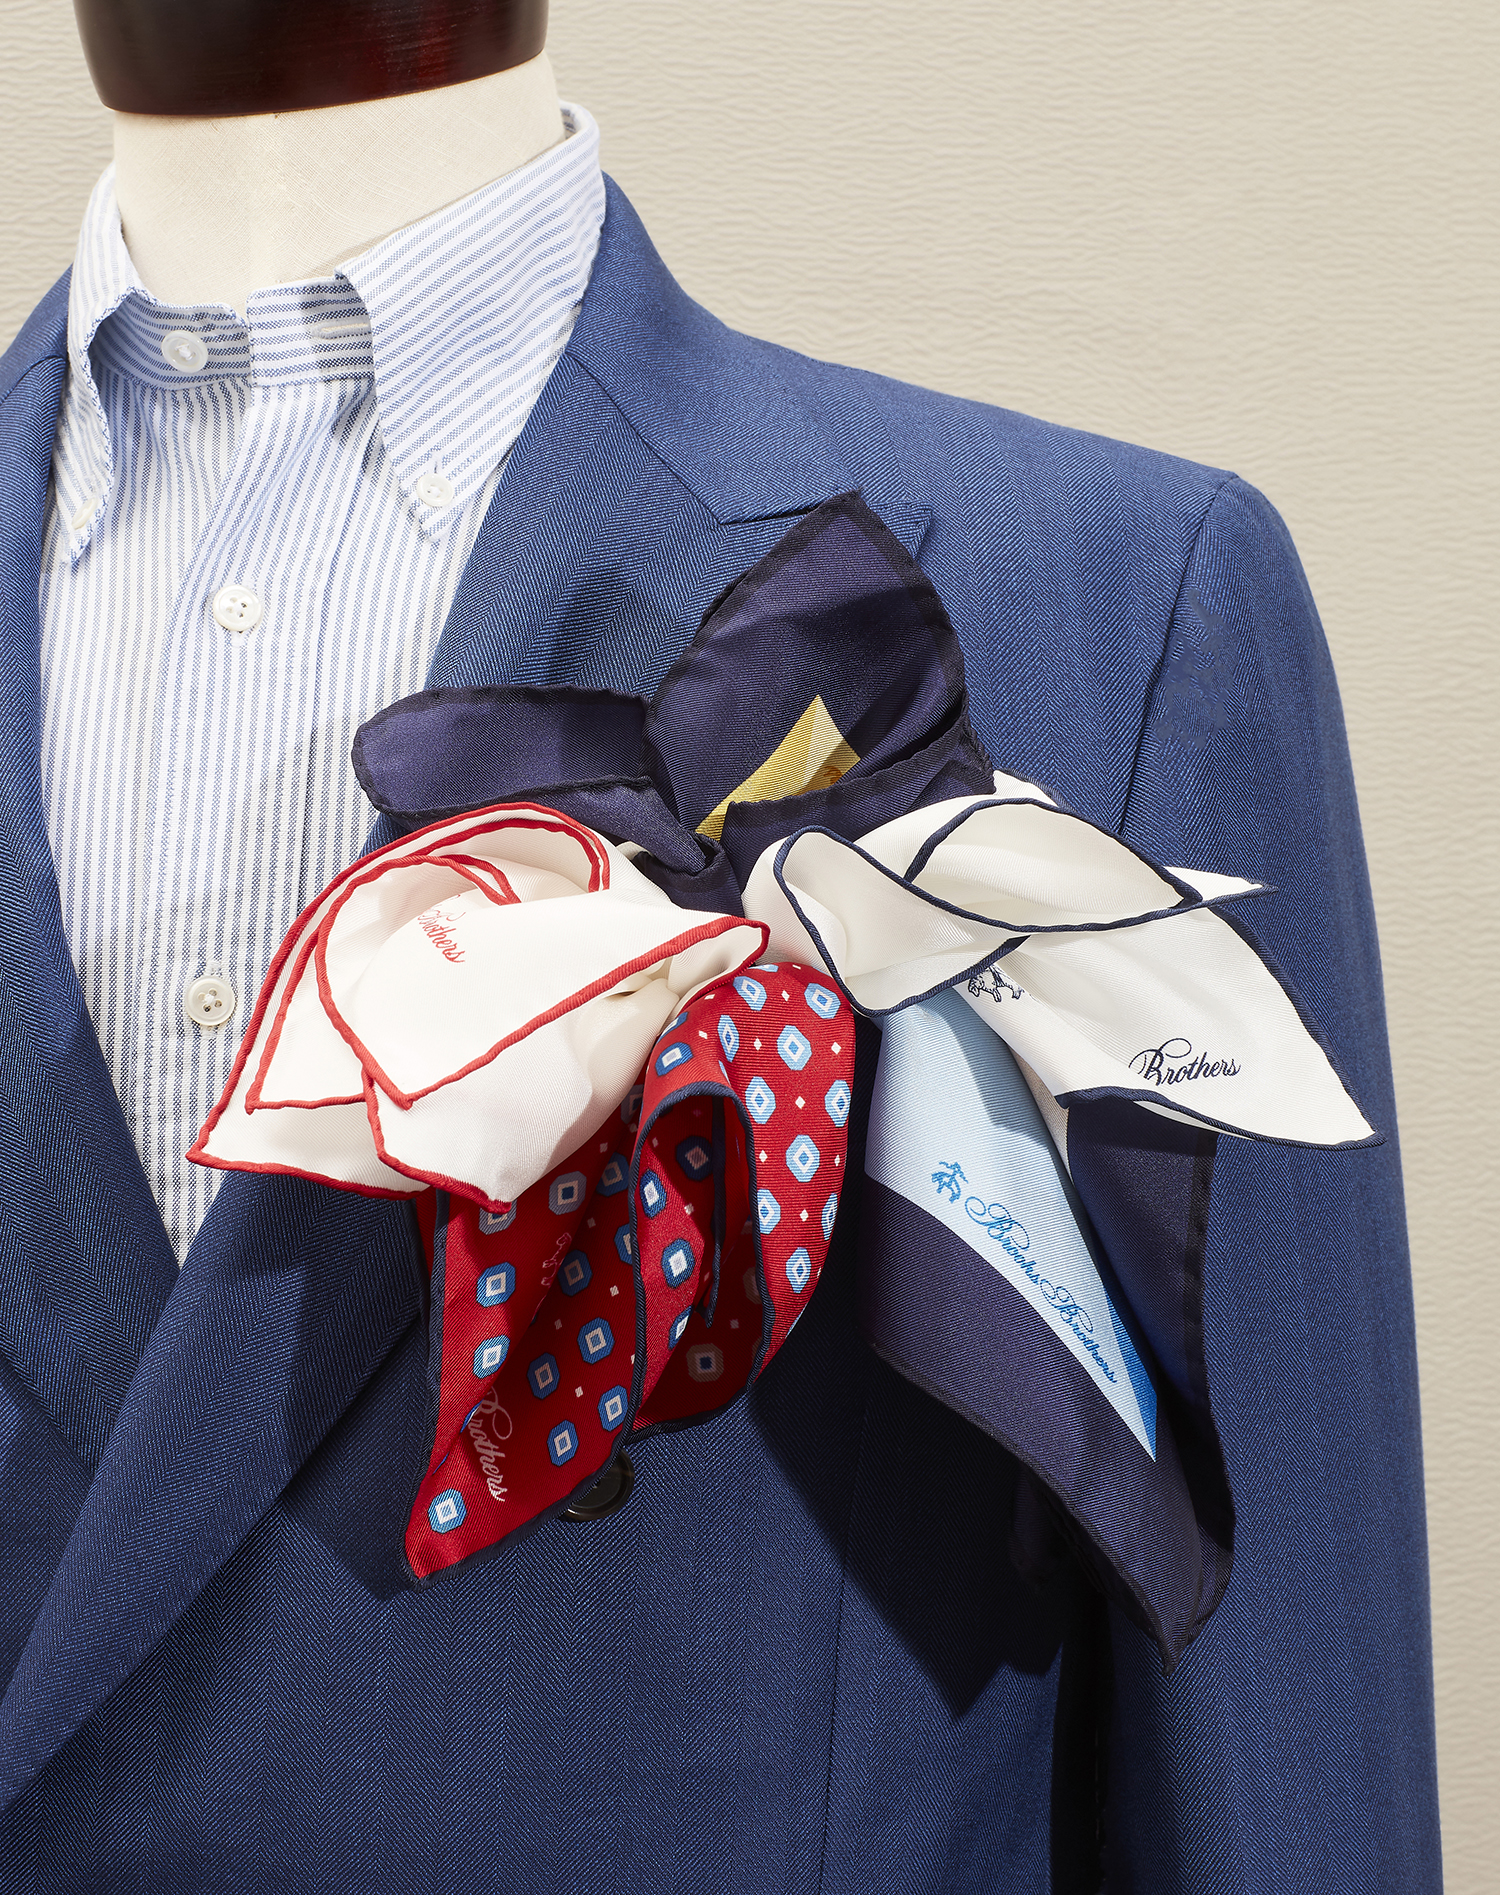 2018-10-09 SPRING CONTENT NEW SILK POCKET SQUARE 02-Resized.jpg